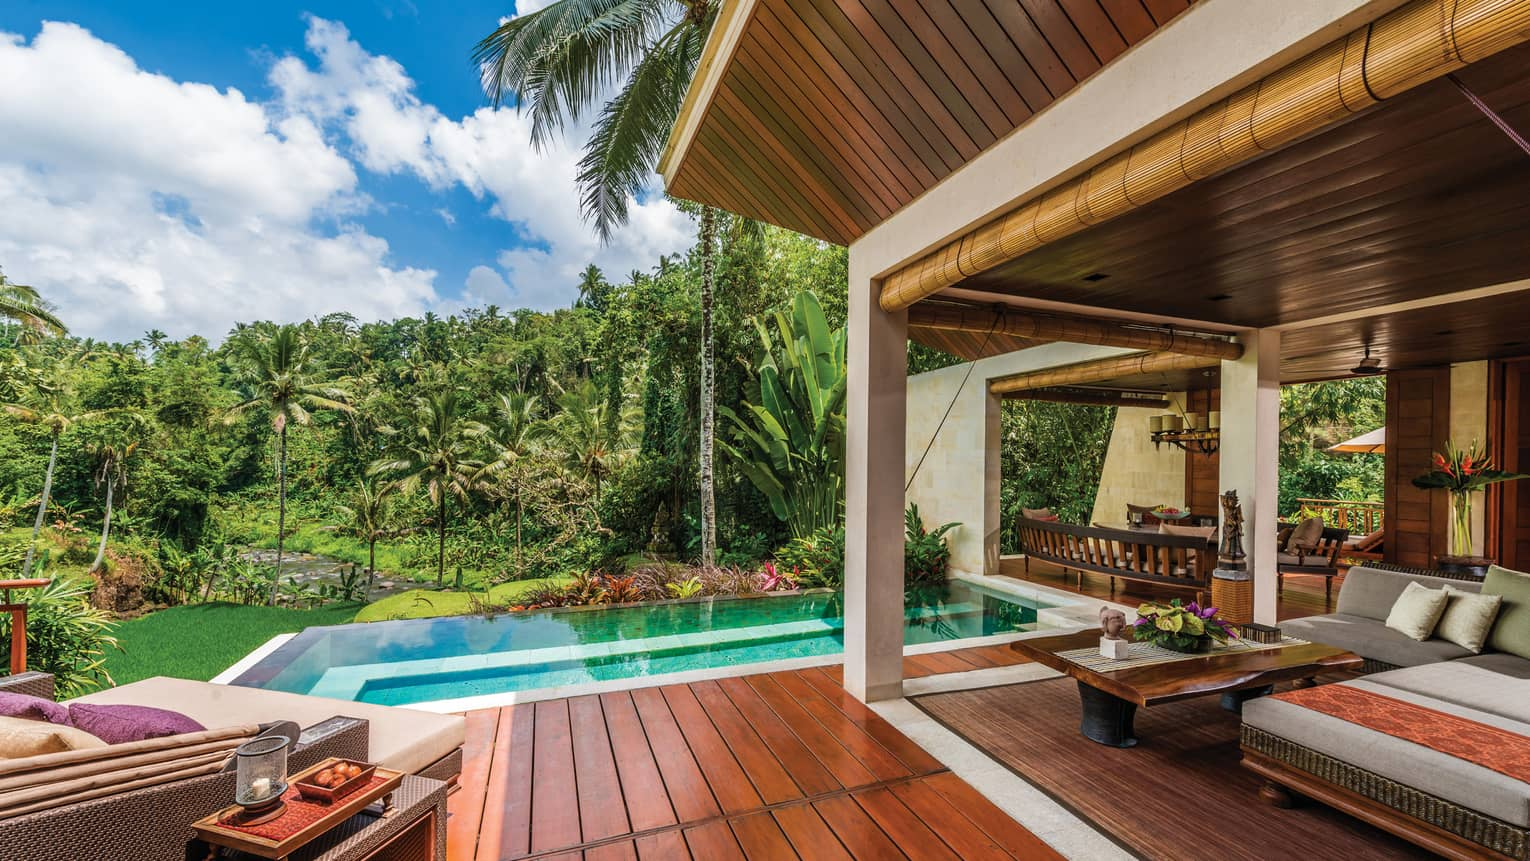 River-View Two Bedroom Villa patio with wood deck, blue plunge pool, large patio sofas with cushions, forest views